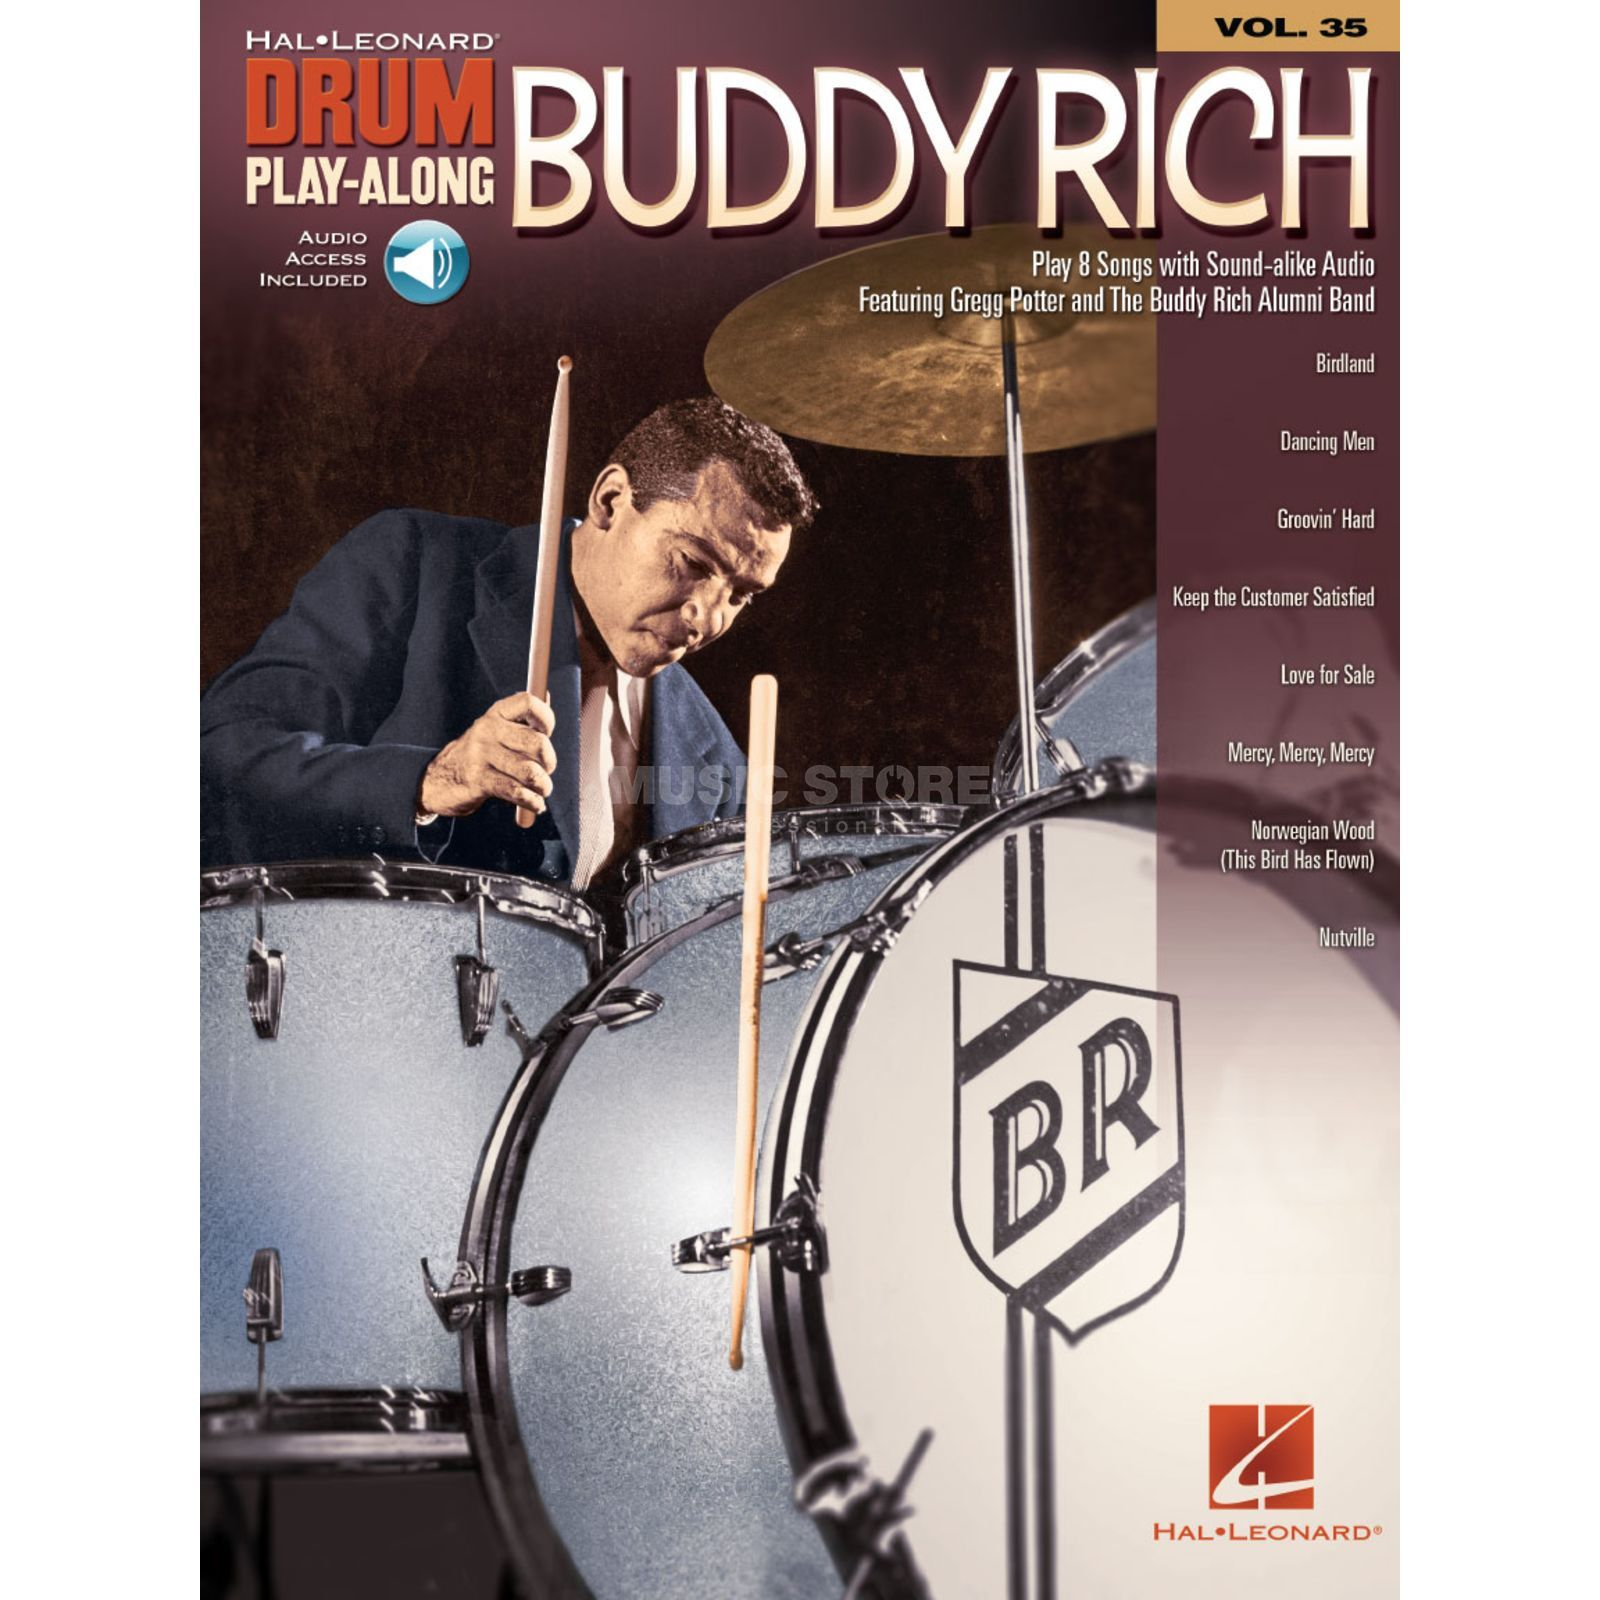 Hal Leonard Drum Play-Along: Buddy Rich Vol. 35, Download Product Image